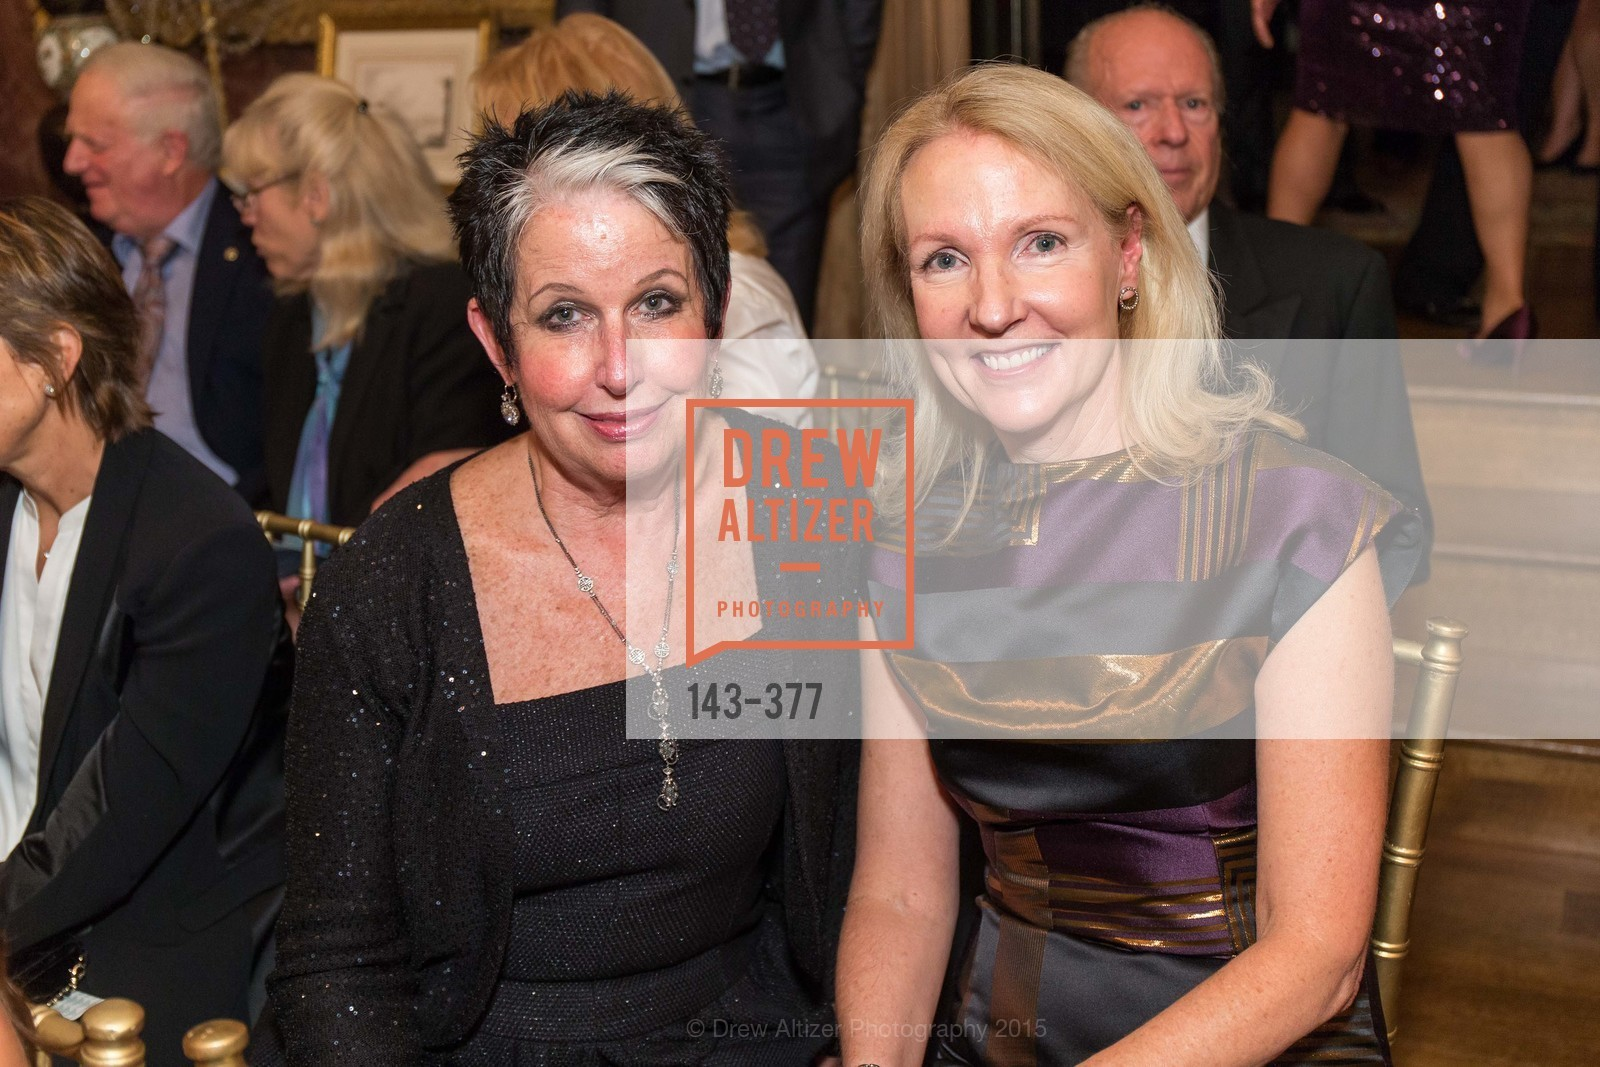 Karen Kubin, Ann Girard, Ann and Gordon Getty Host SF Conservatory of Music with Marilyn Horne, Private Residence, October 15th, 2015,Drew Altizer, Drew Altizer Photography, full-service agency, private events, San Francisco photographer, photographer california